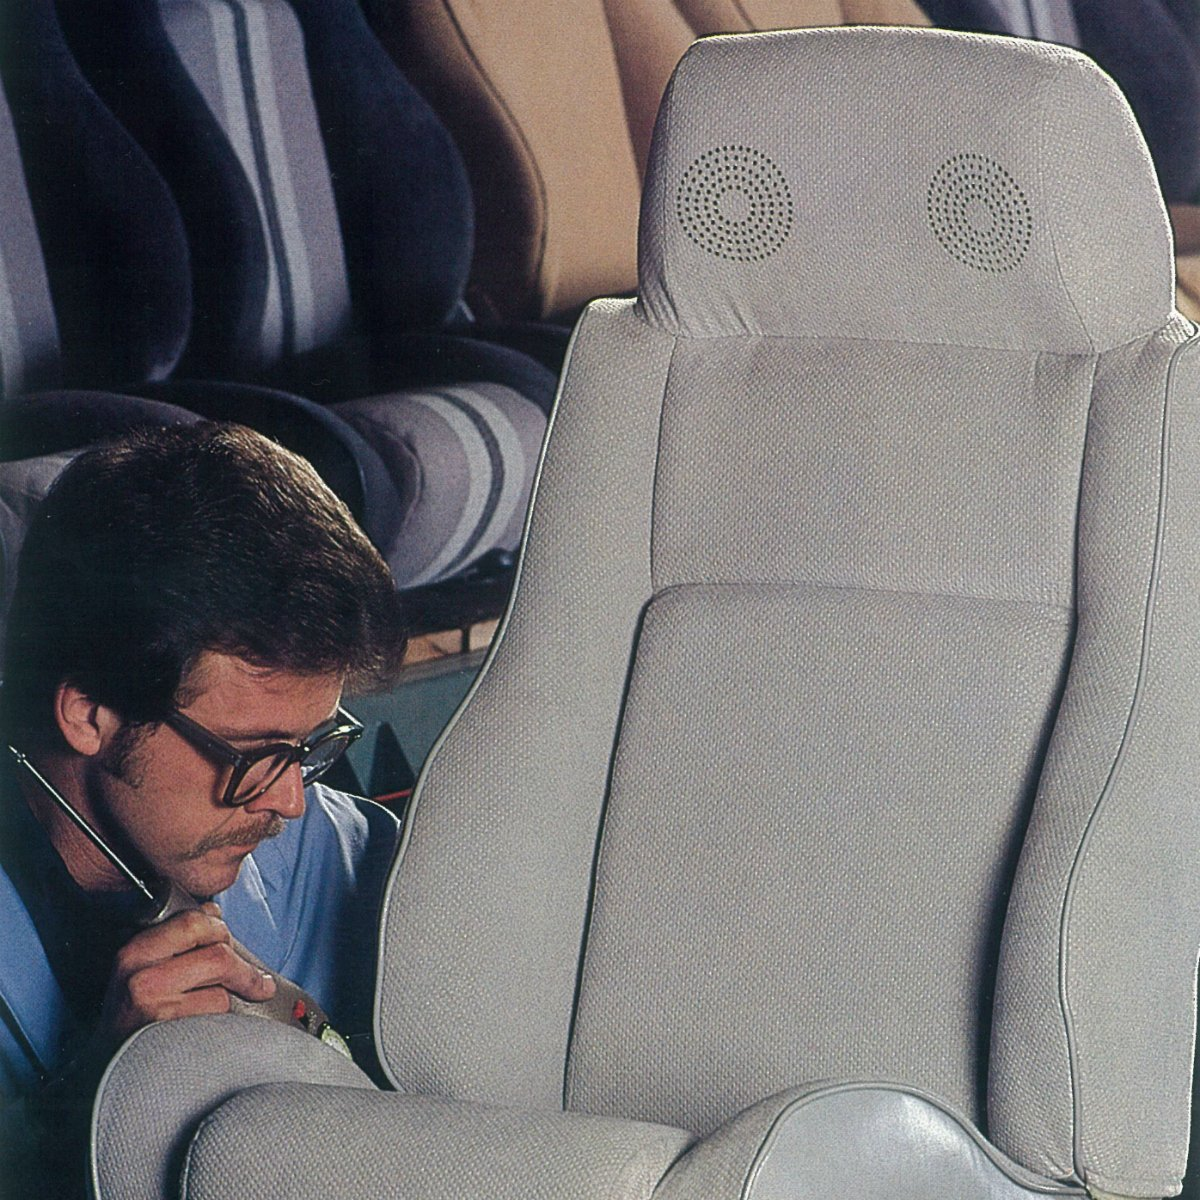 Lear Corporation On Twitter TBT To The 1980s Seats With Headrest Stereo Speakers Were Installed Into Vehicles Such As Pontiac Fiero Auto